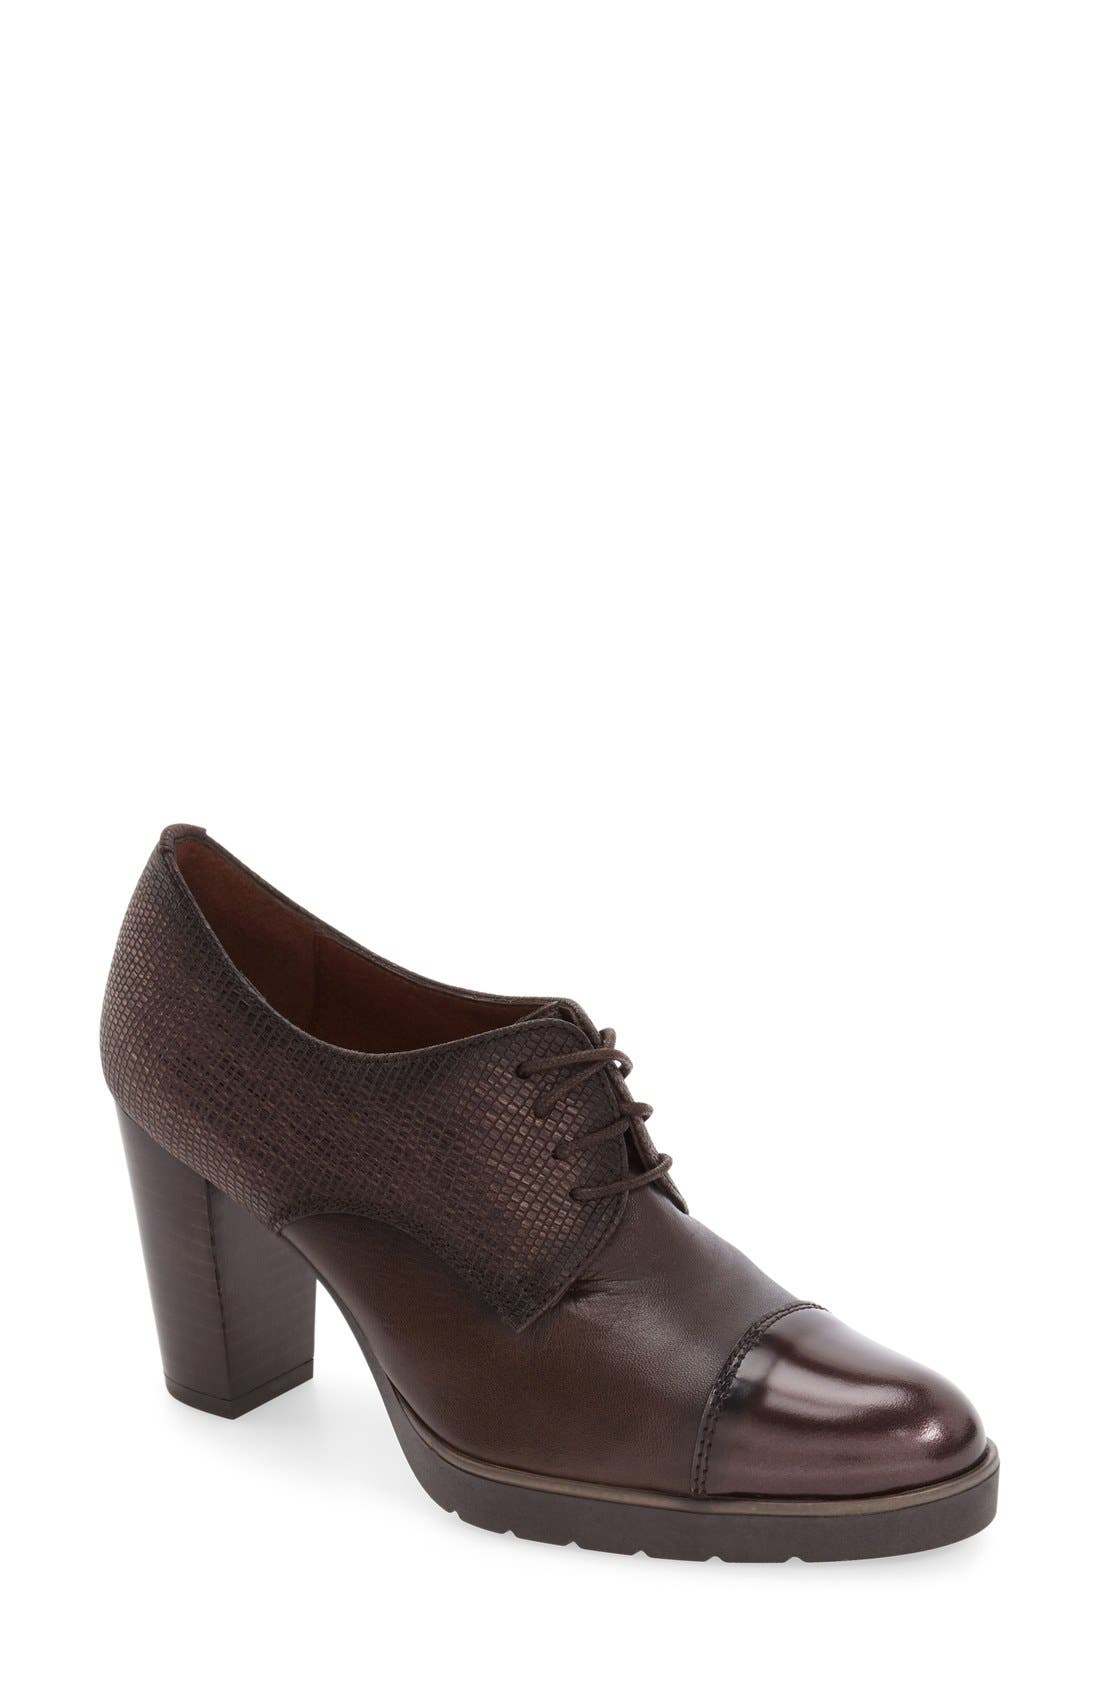 Hispanitas 'Viv' Cap Toe Pump (Women)